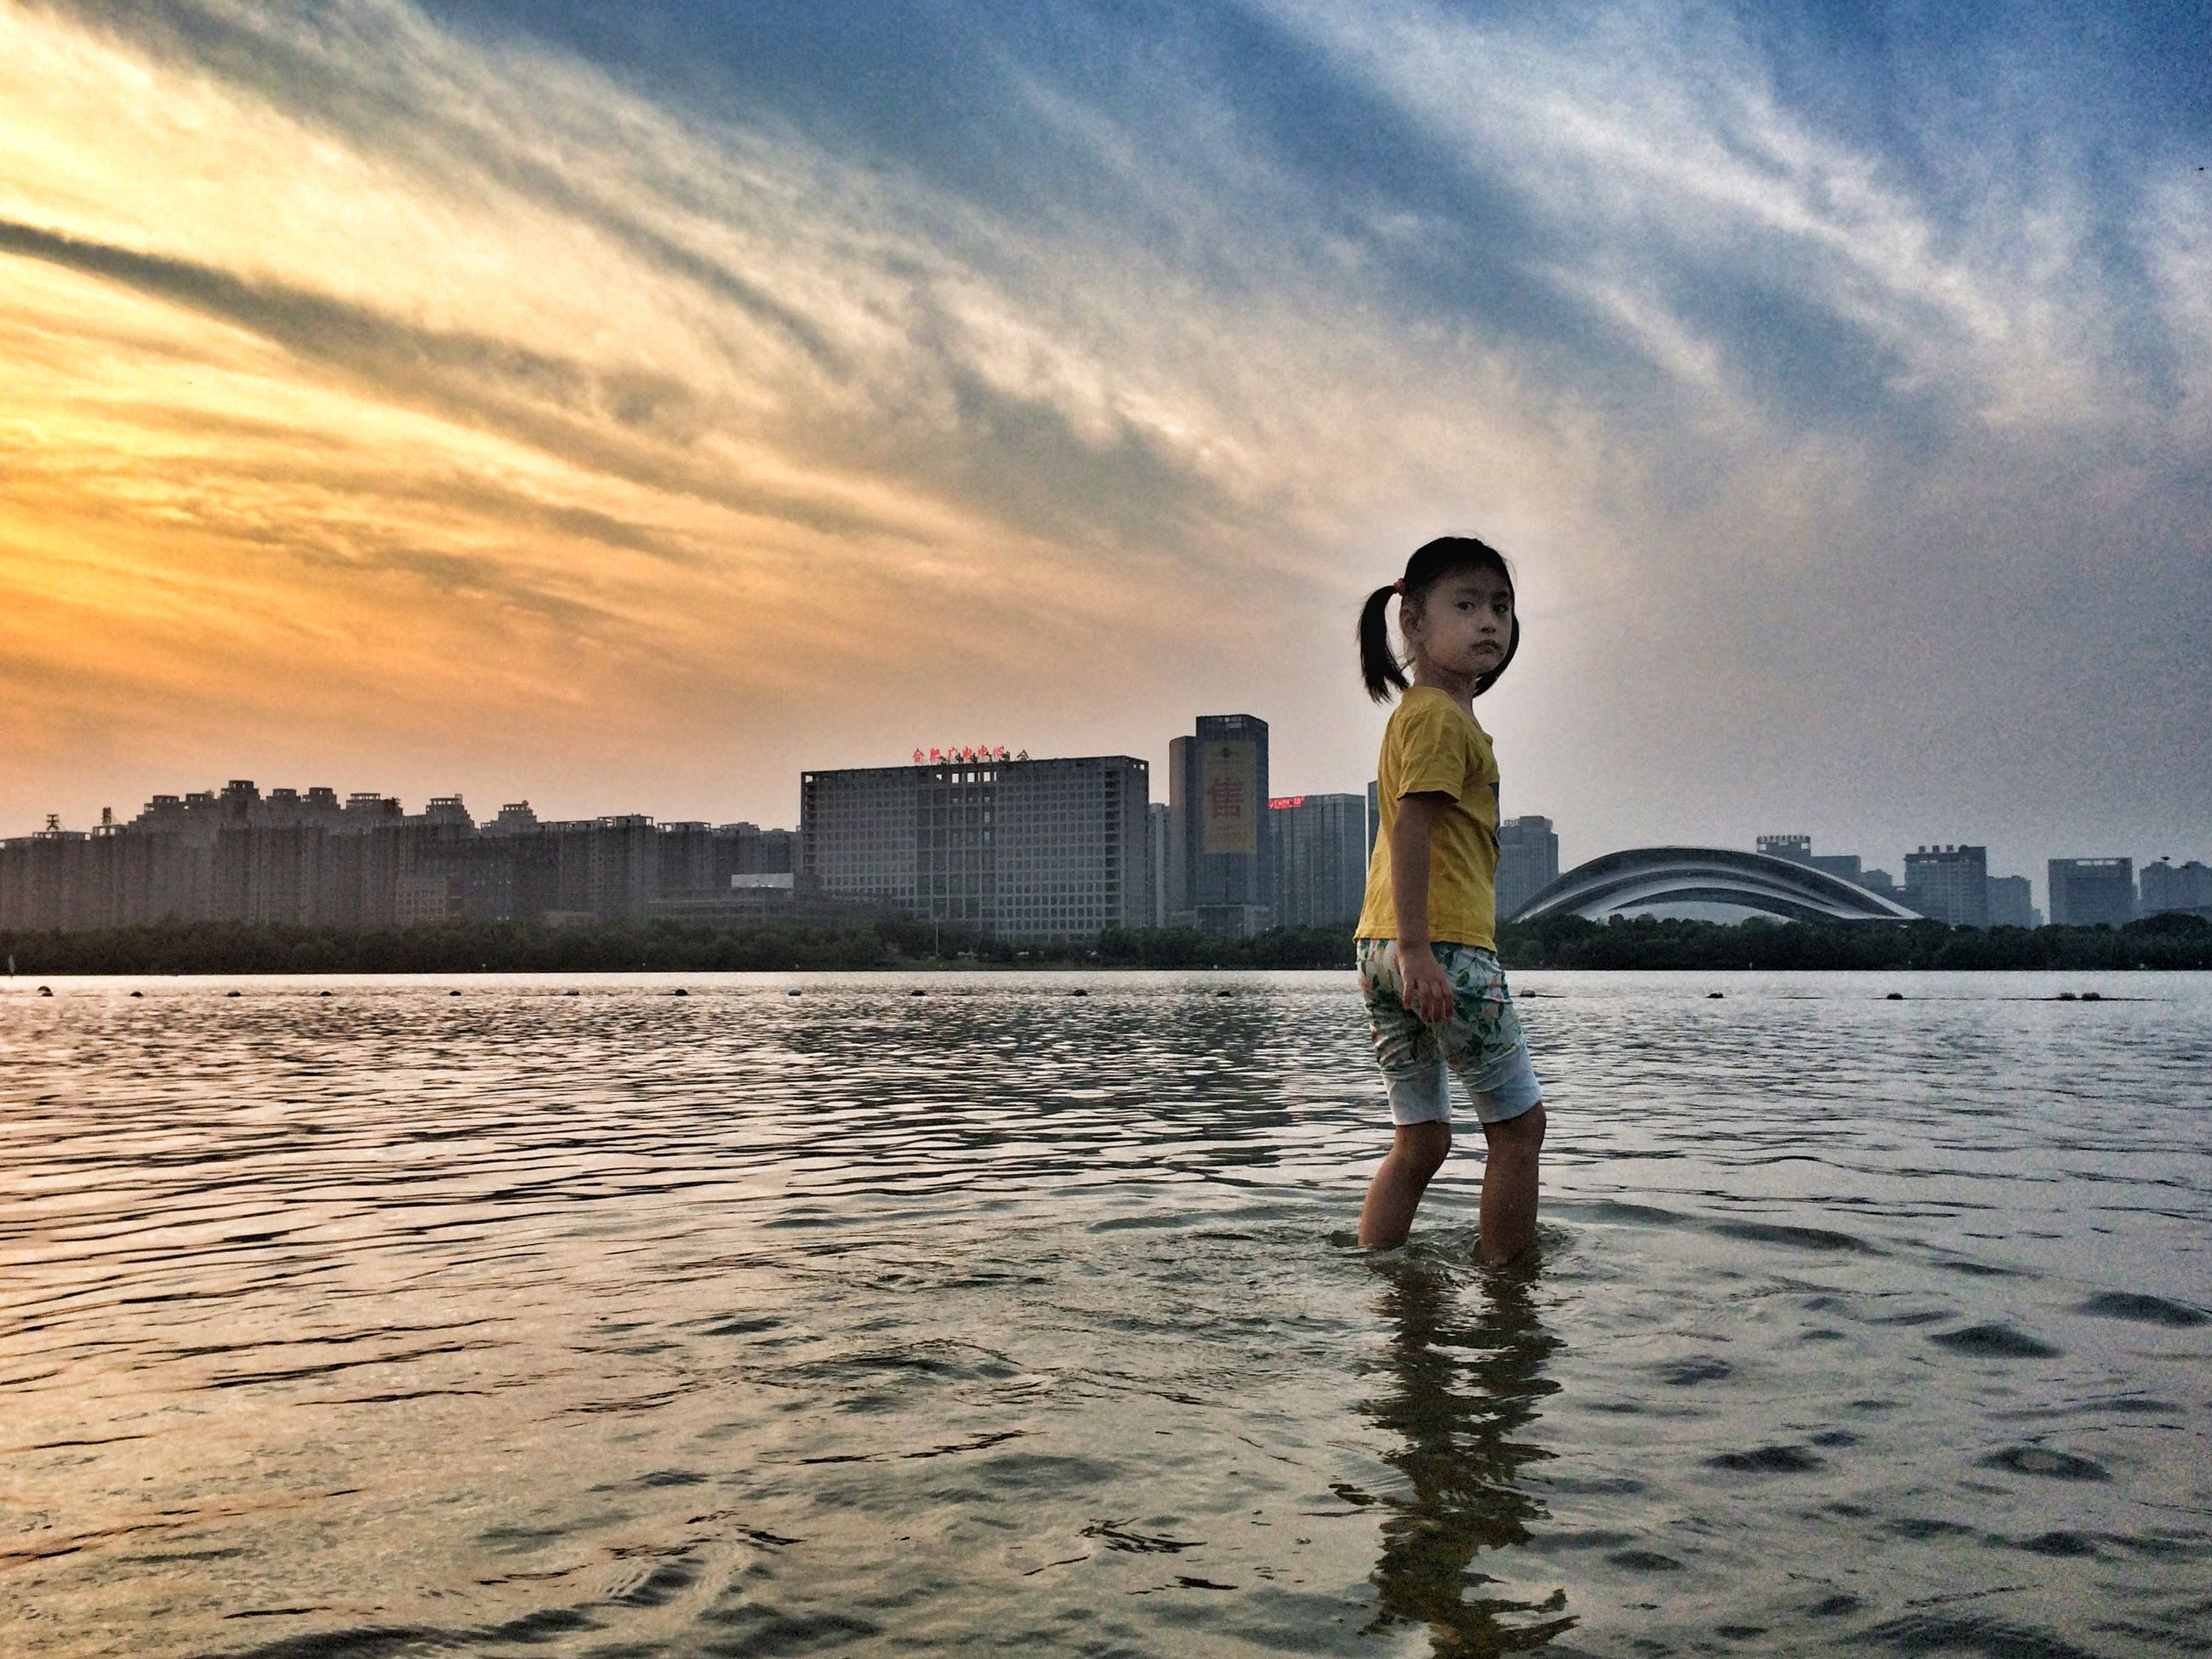 water, building exterior, architecture, sky, built structure, sunset, city, full length, lifestyles, sea, leisure activity, standing, cloud - sky, city life, cityscape, waterfront, rear view, men